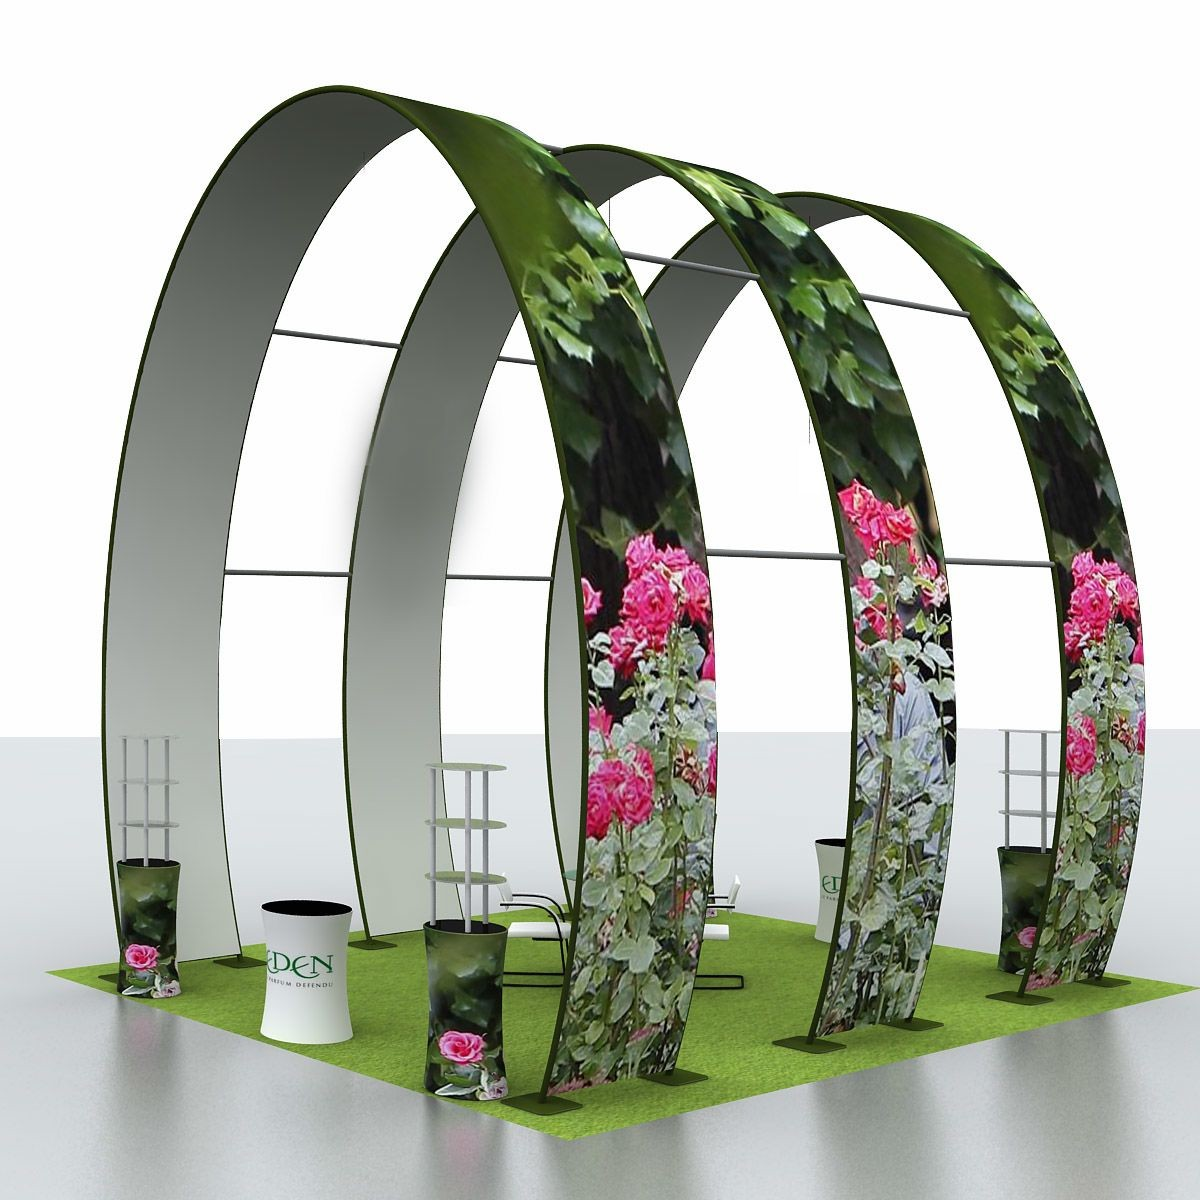 20 Foot by 60 Foot Tension Fabric Display with Ground Arch